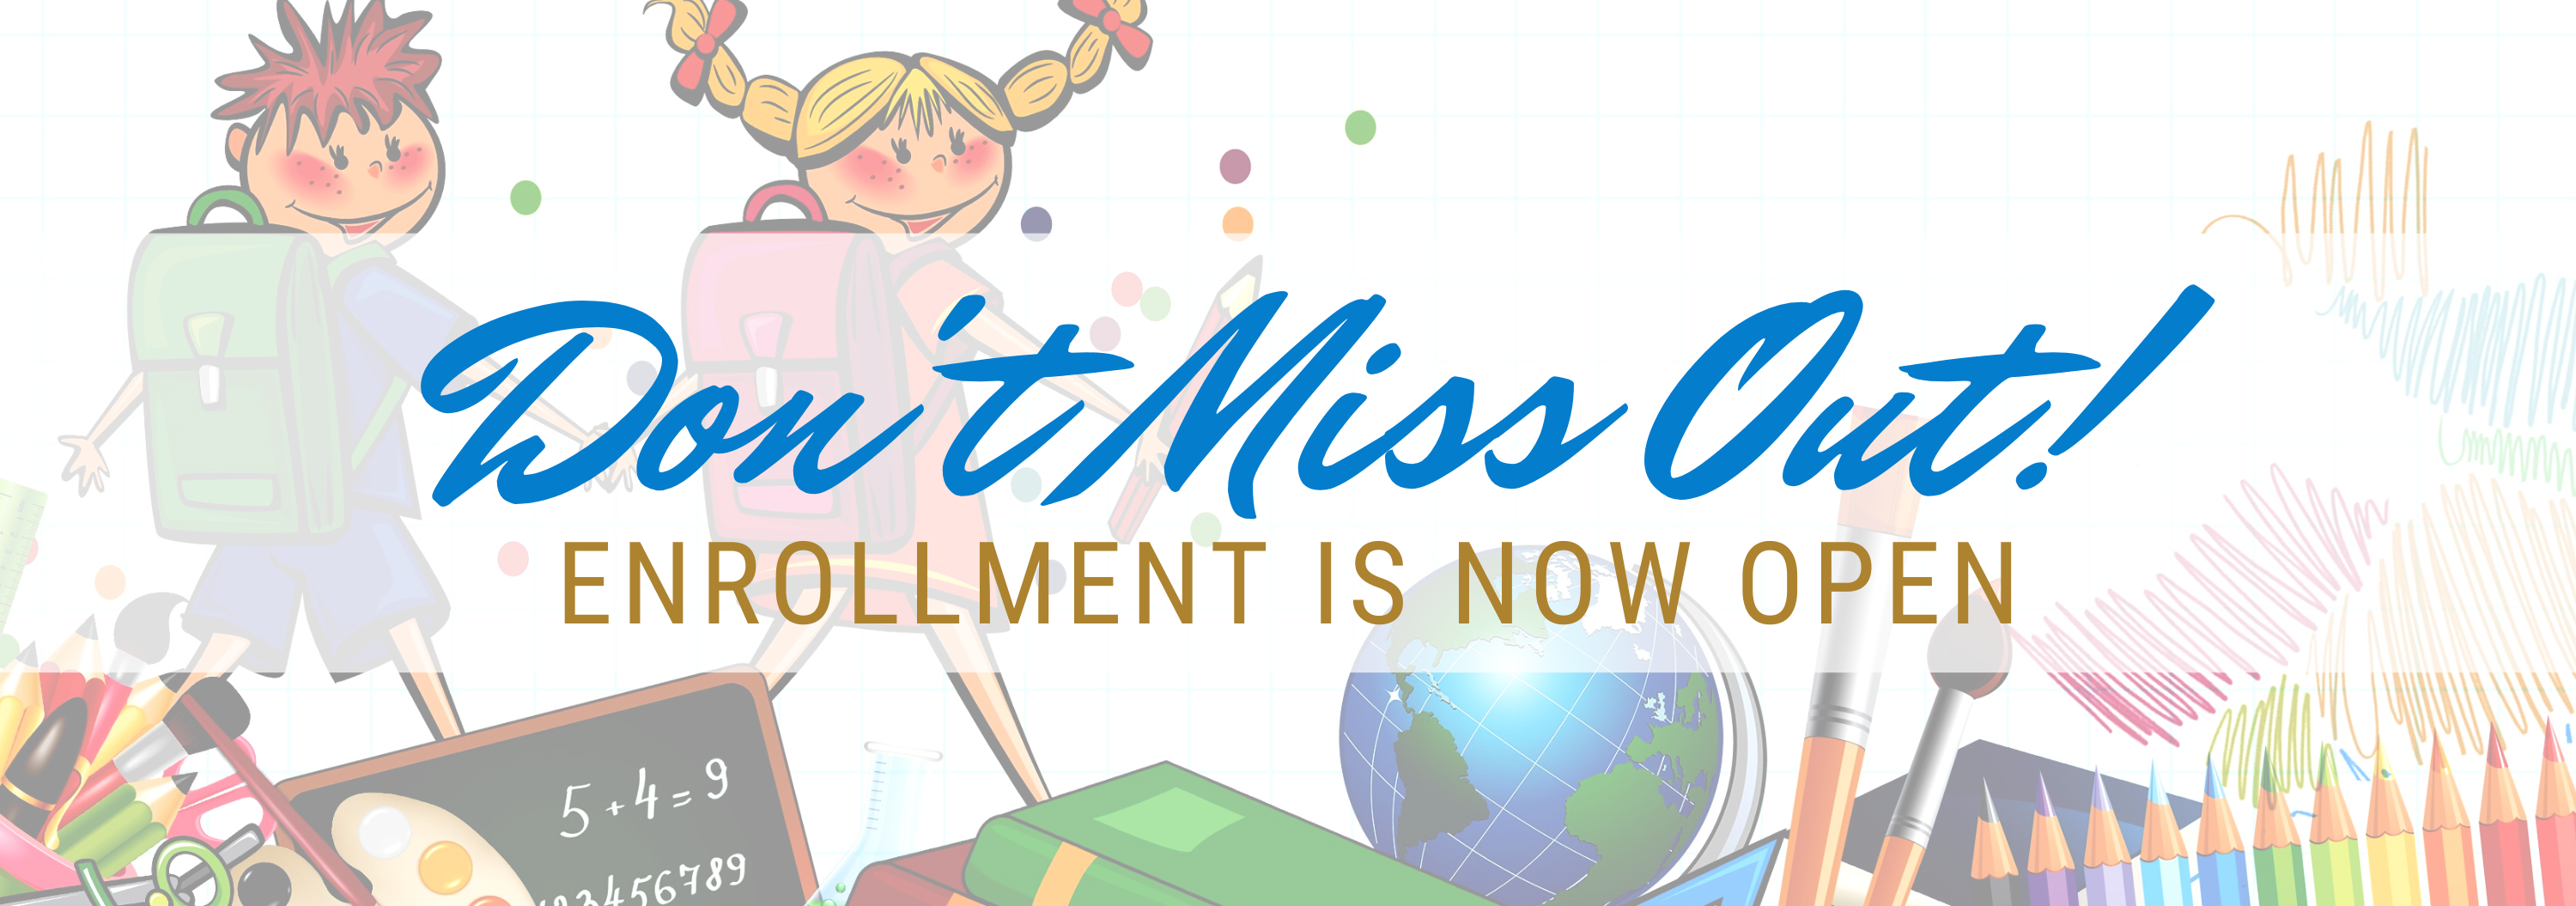 Enrollment Website Banner